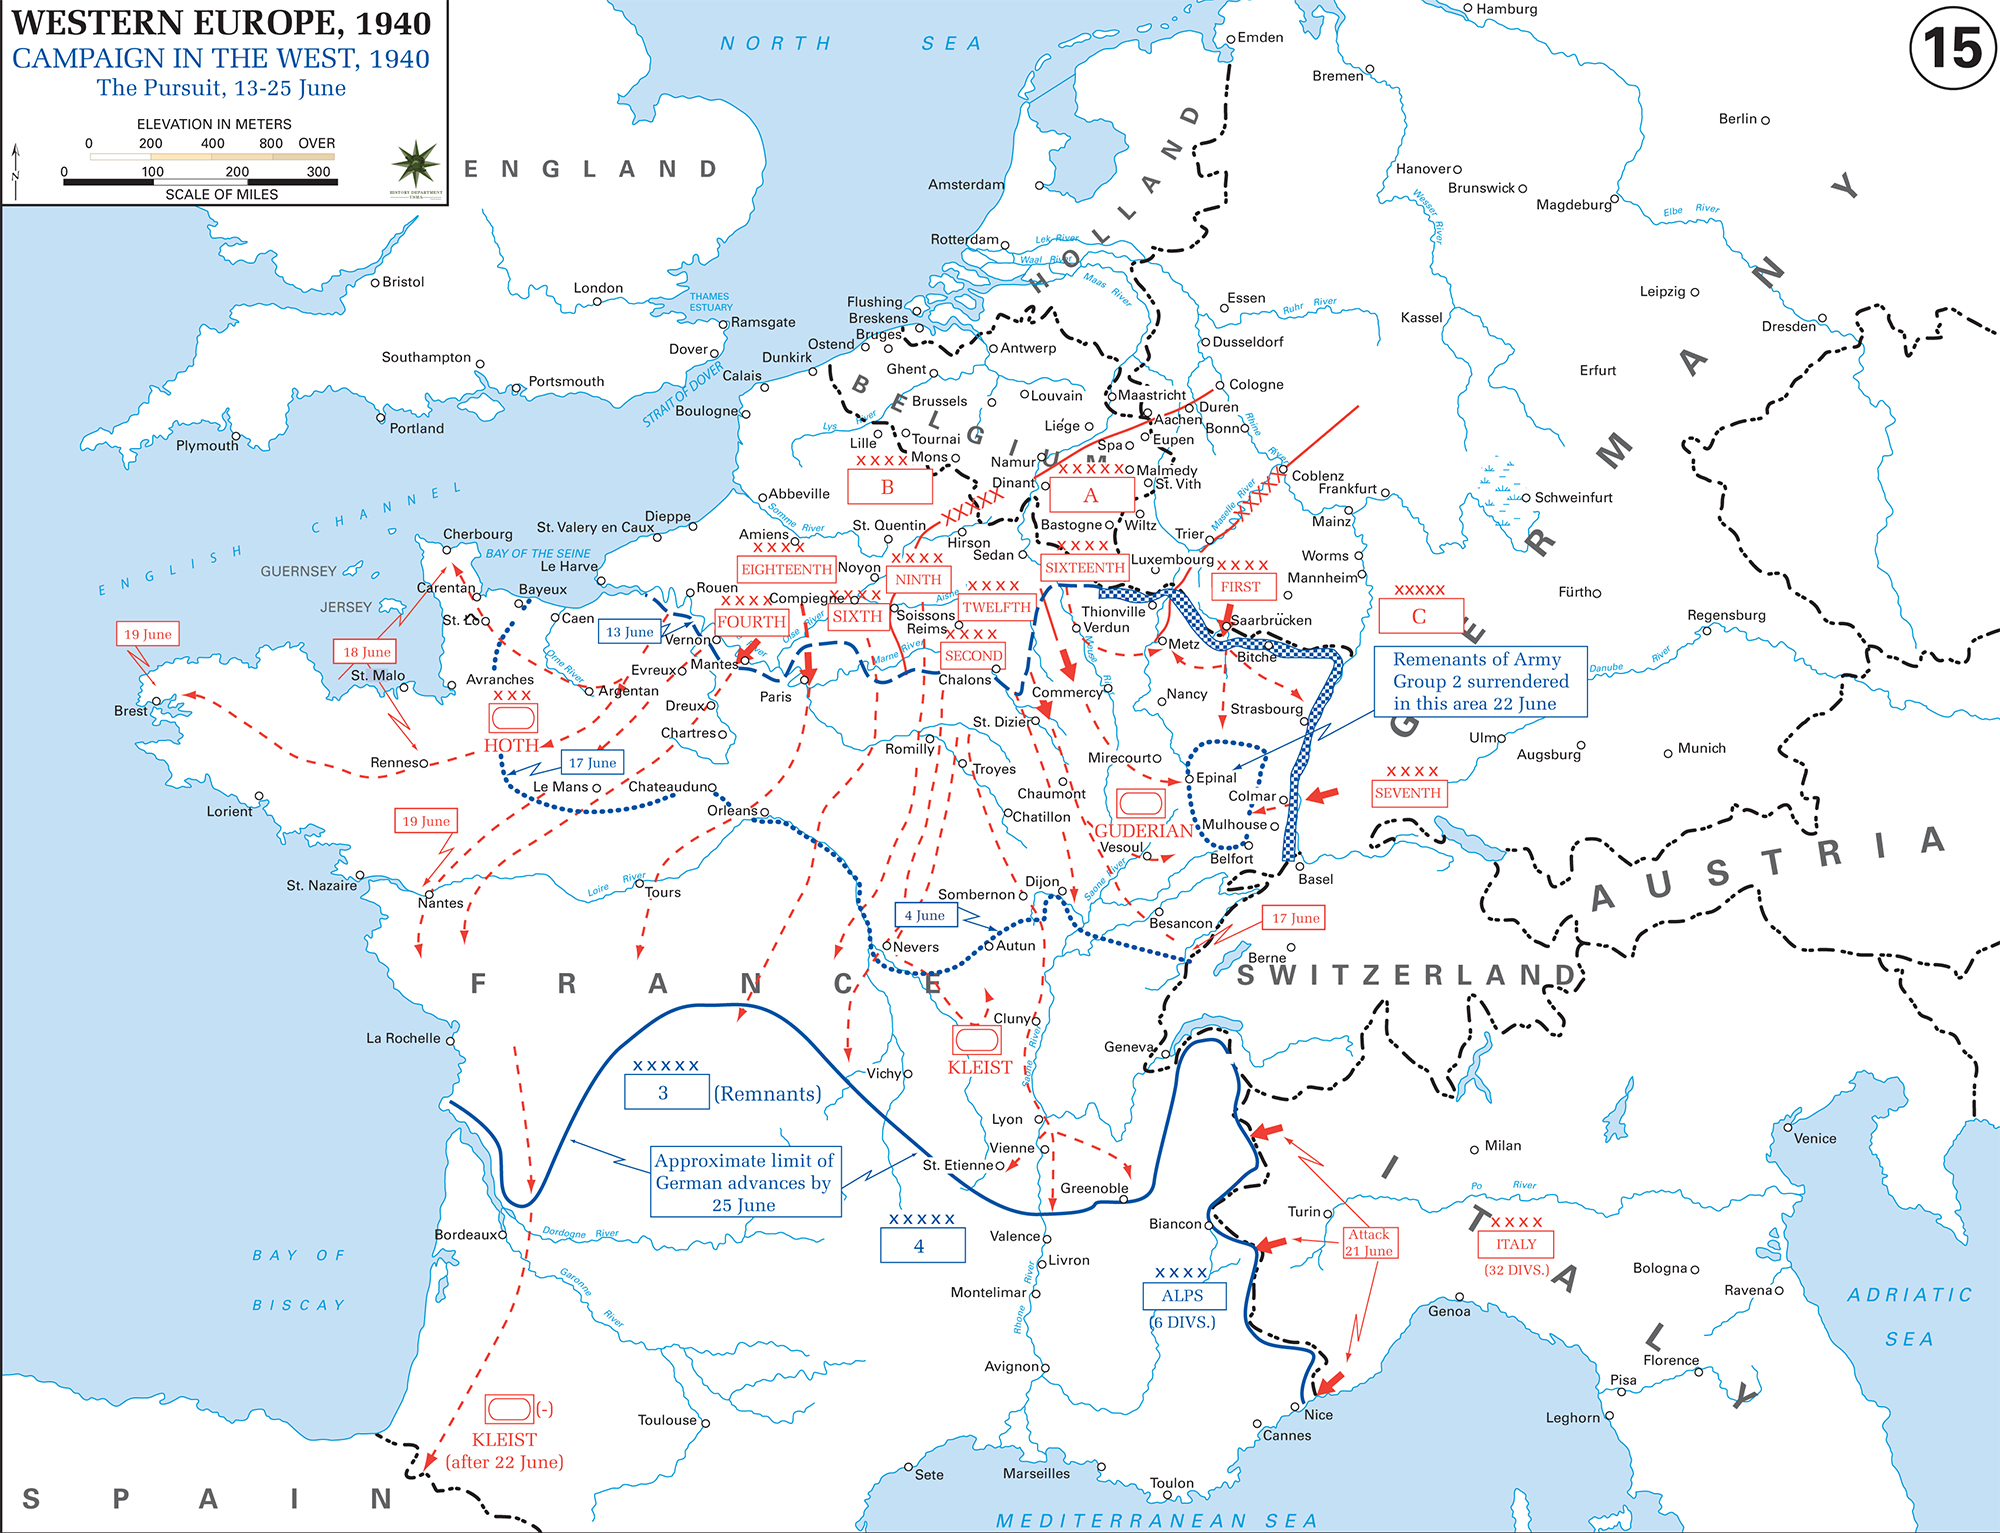 Map of WWII The War in the West 1940 June 13 25